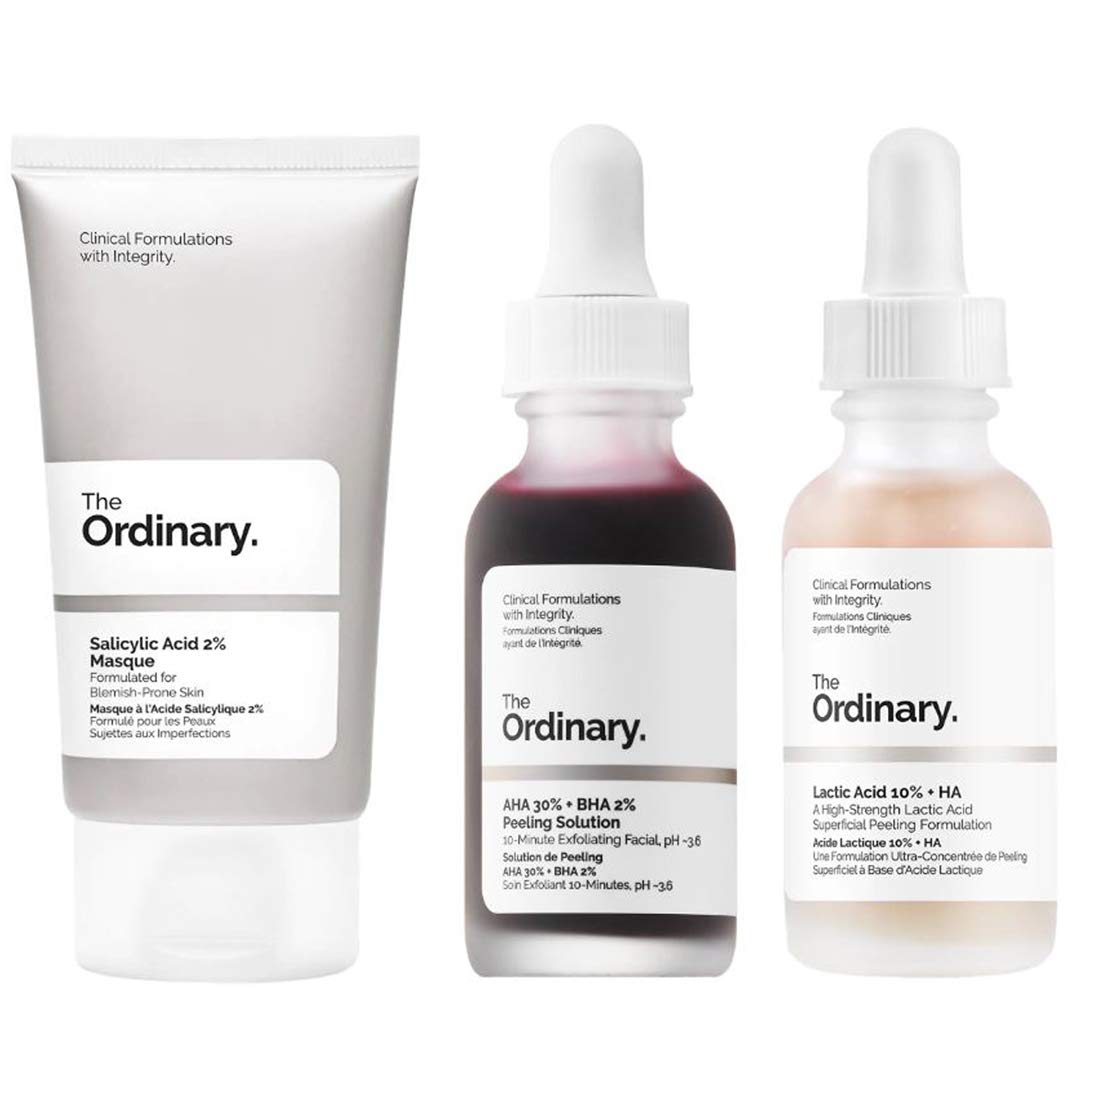 The Ordinary Face Exfoliator Set! AHA 30% + Bha 2% Peeling Solution Help Fight Visible Blemishes! Lactic Acid 10% + Ha For Healthier-Looking Skin! Salicylic Acid 2% Mask Smoothness & Clarity!